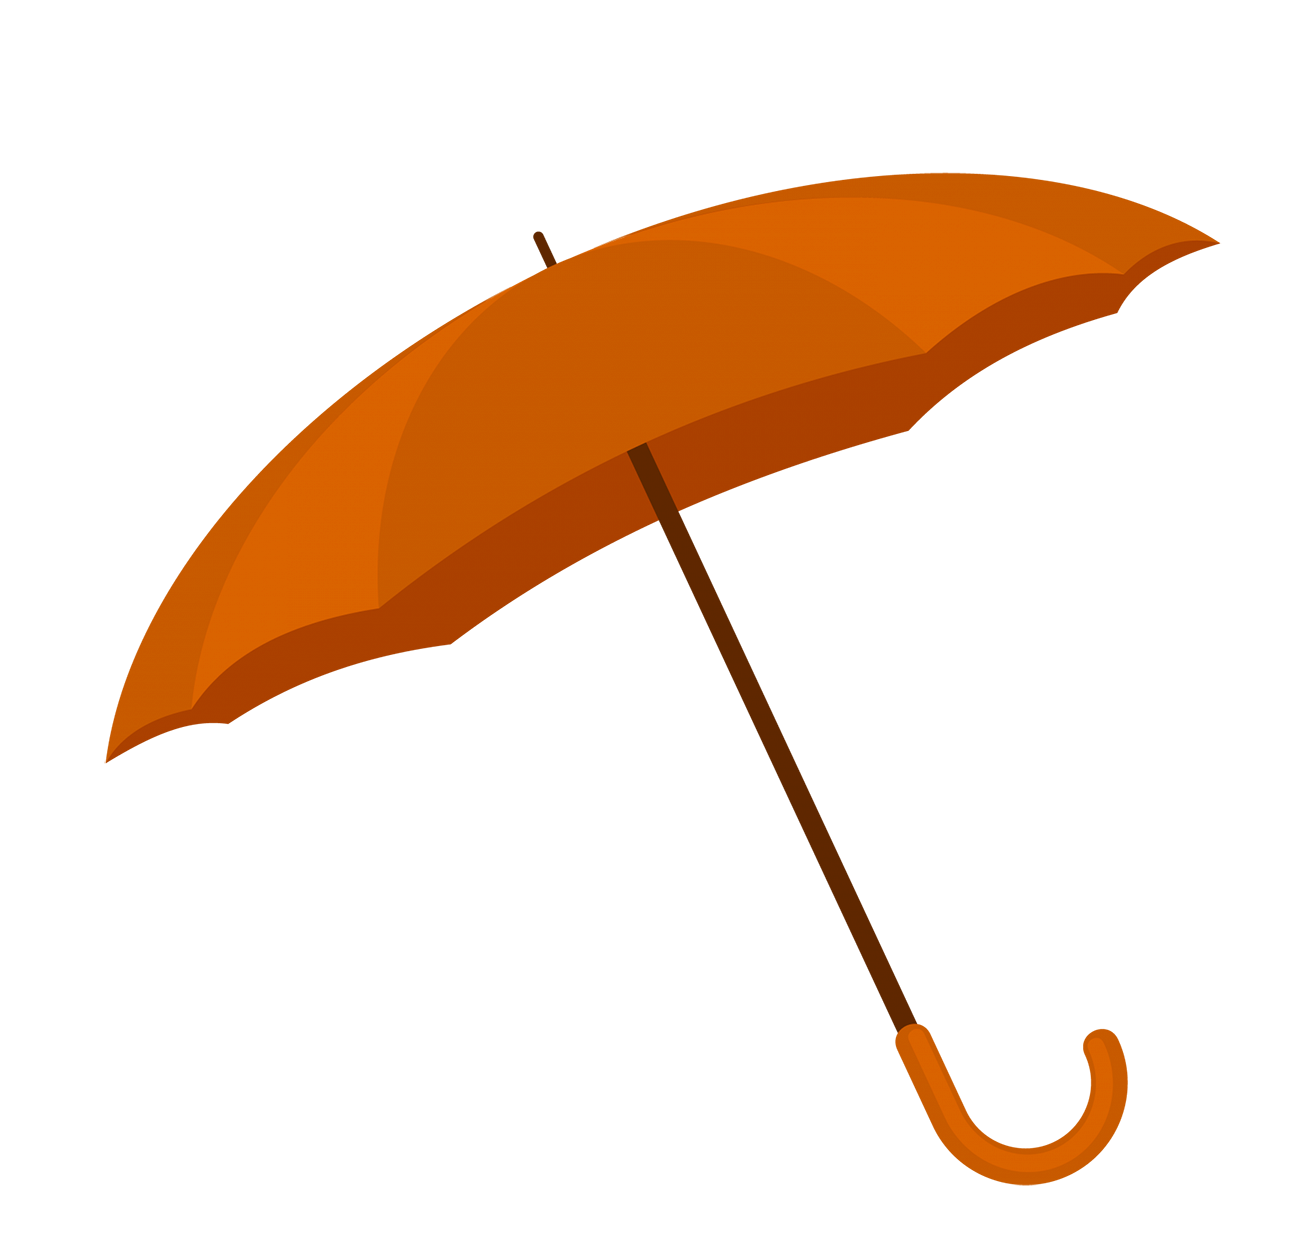 orange umbrella image